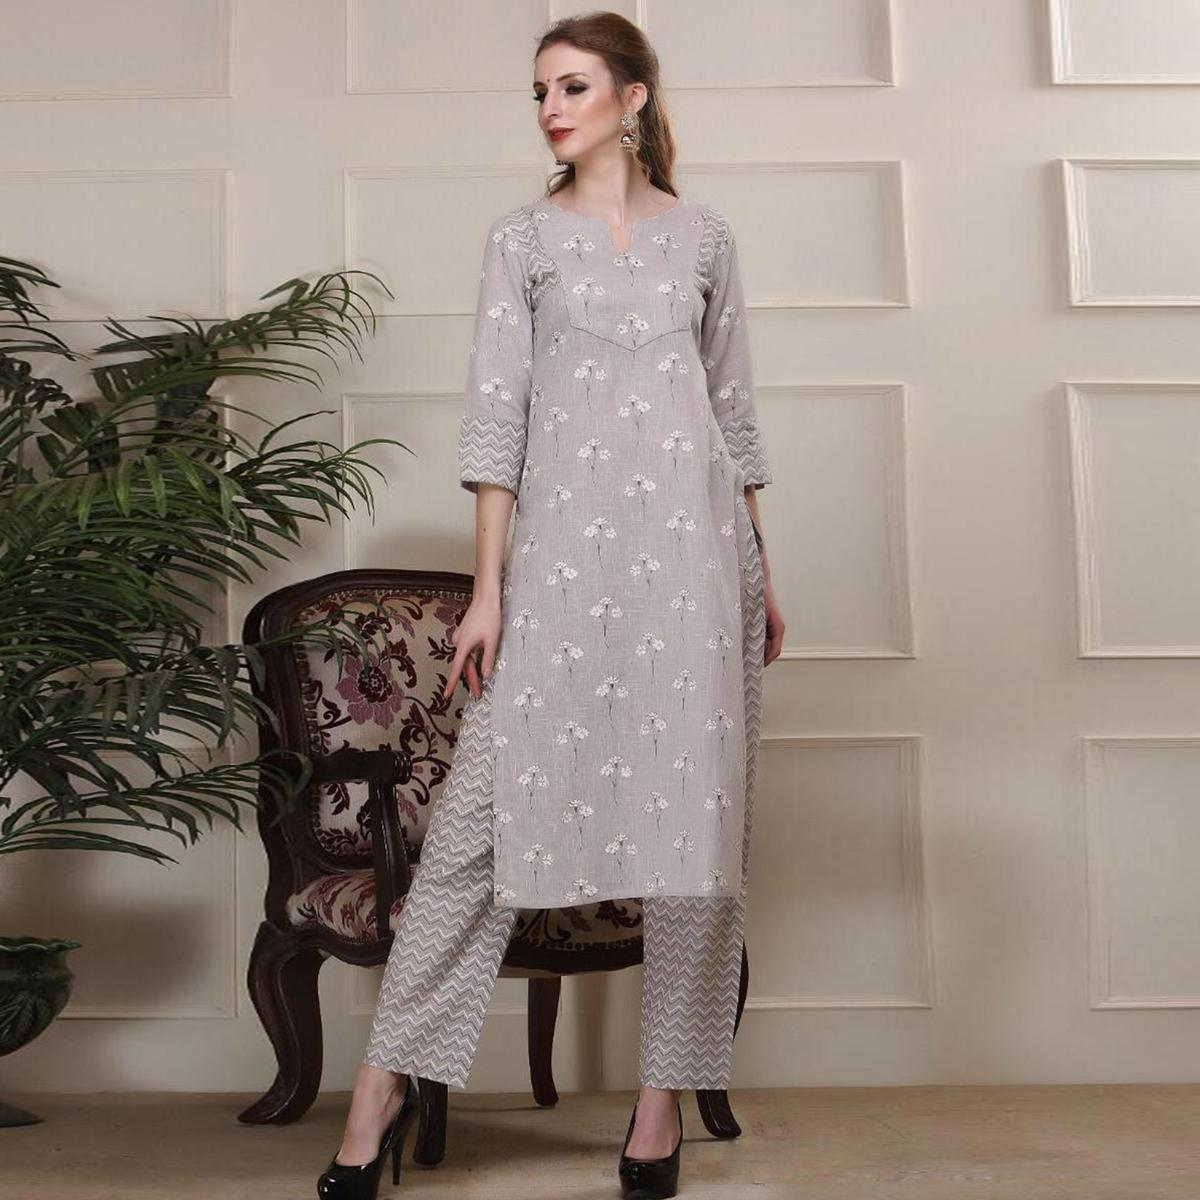 Exceptional Ligth Grey Colored Casual Wear Printed Work Knee Length Handloom Cotton Kurti-Palazzo Set